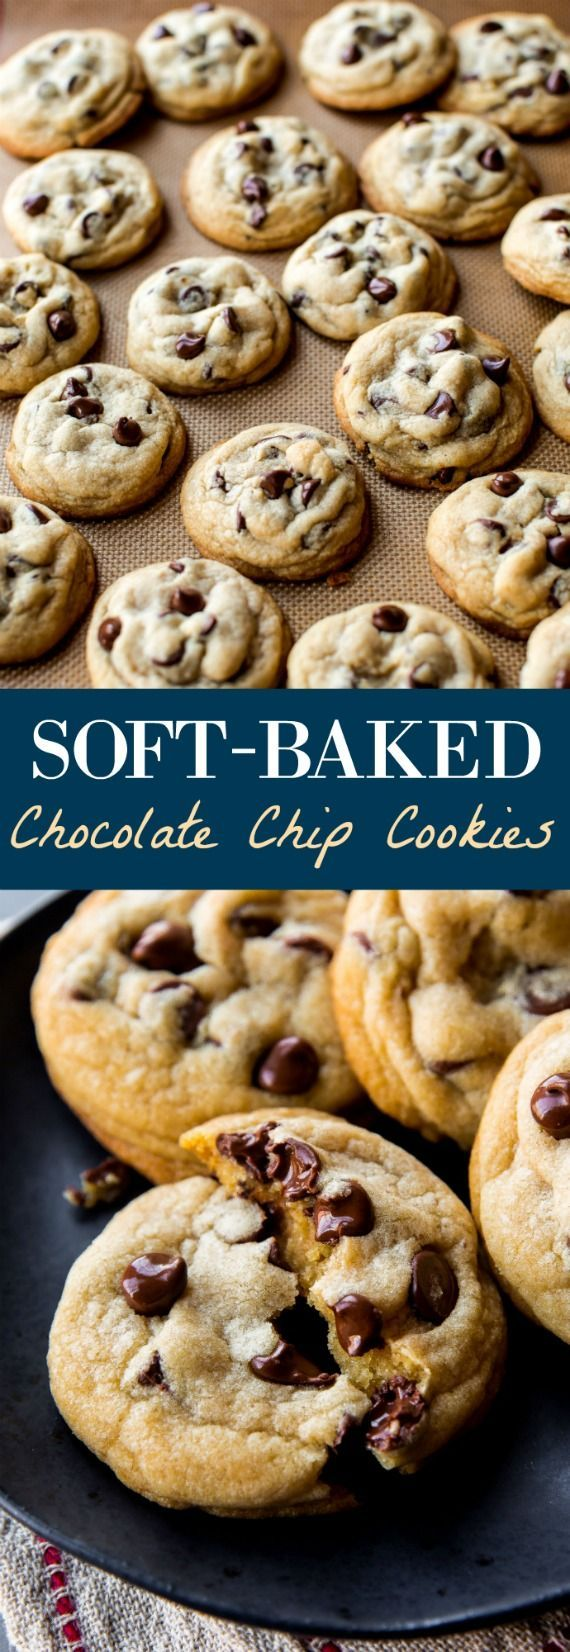 Soft Thick And Puffy Chocolate Chip Cookies The Cornstarch Is The Secret